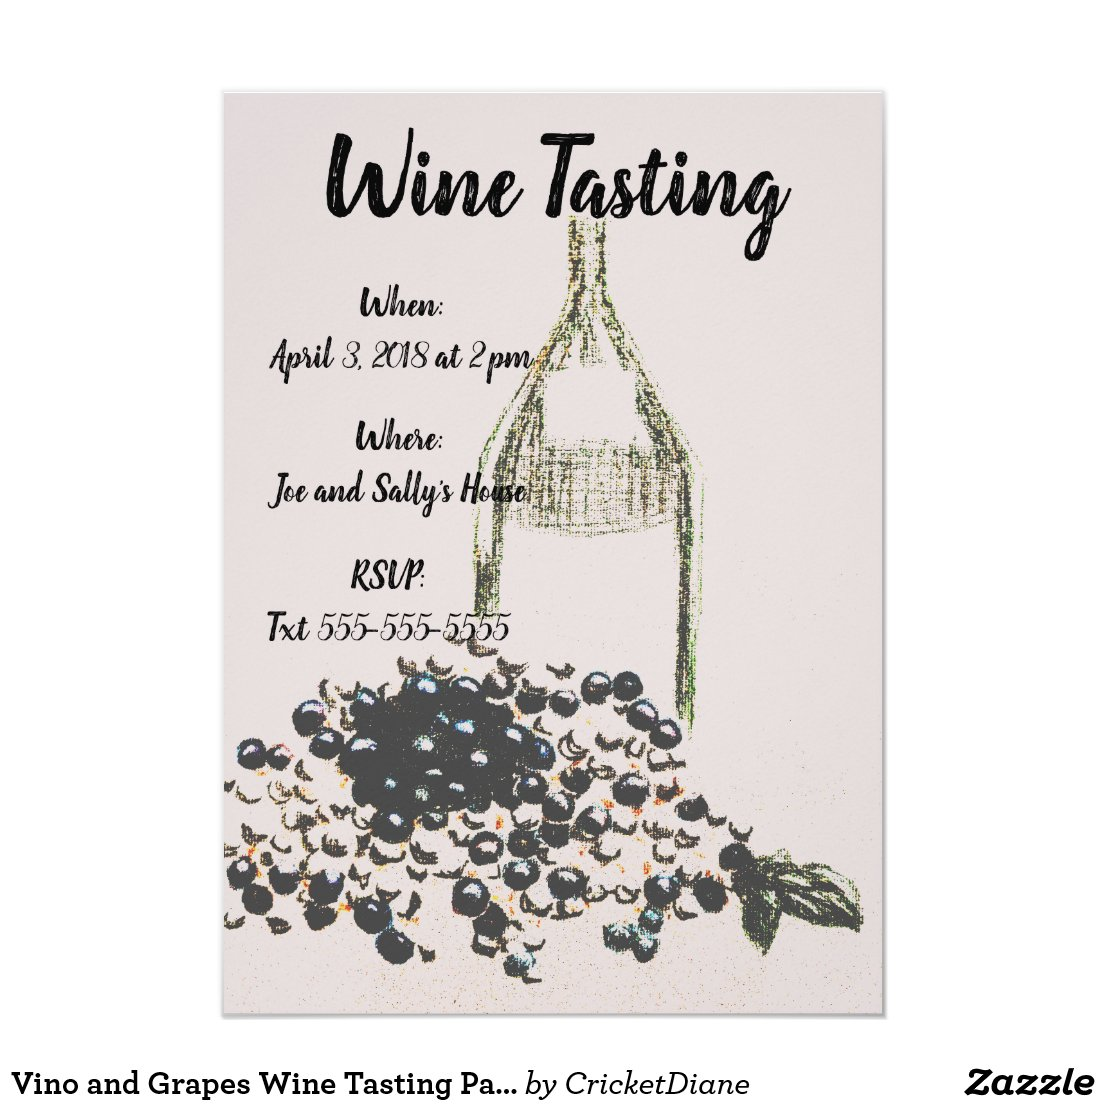 Vino and Grapes Wine Tasting Party Invites